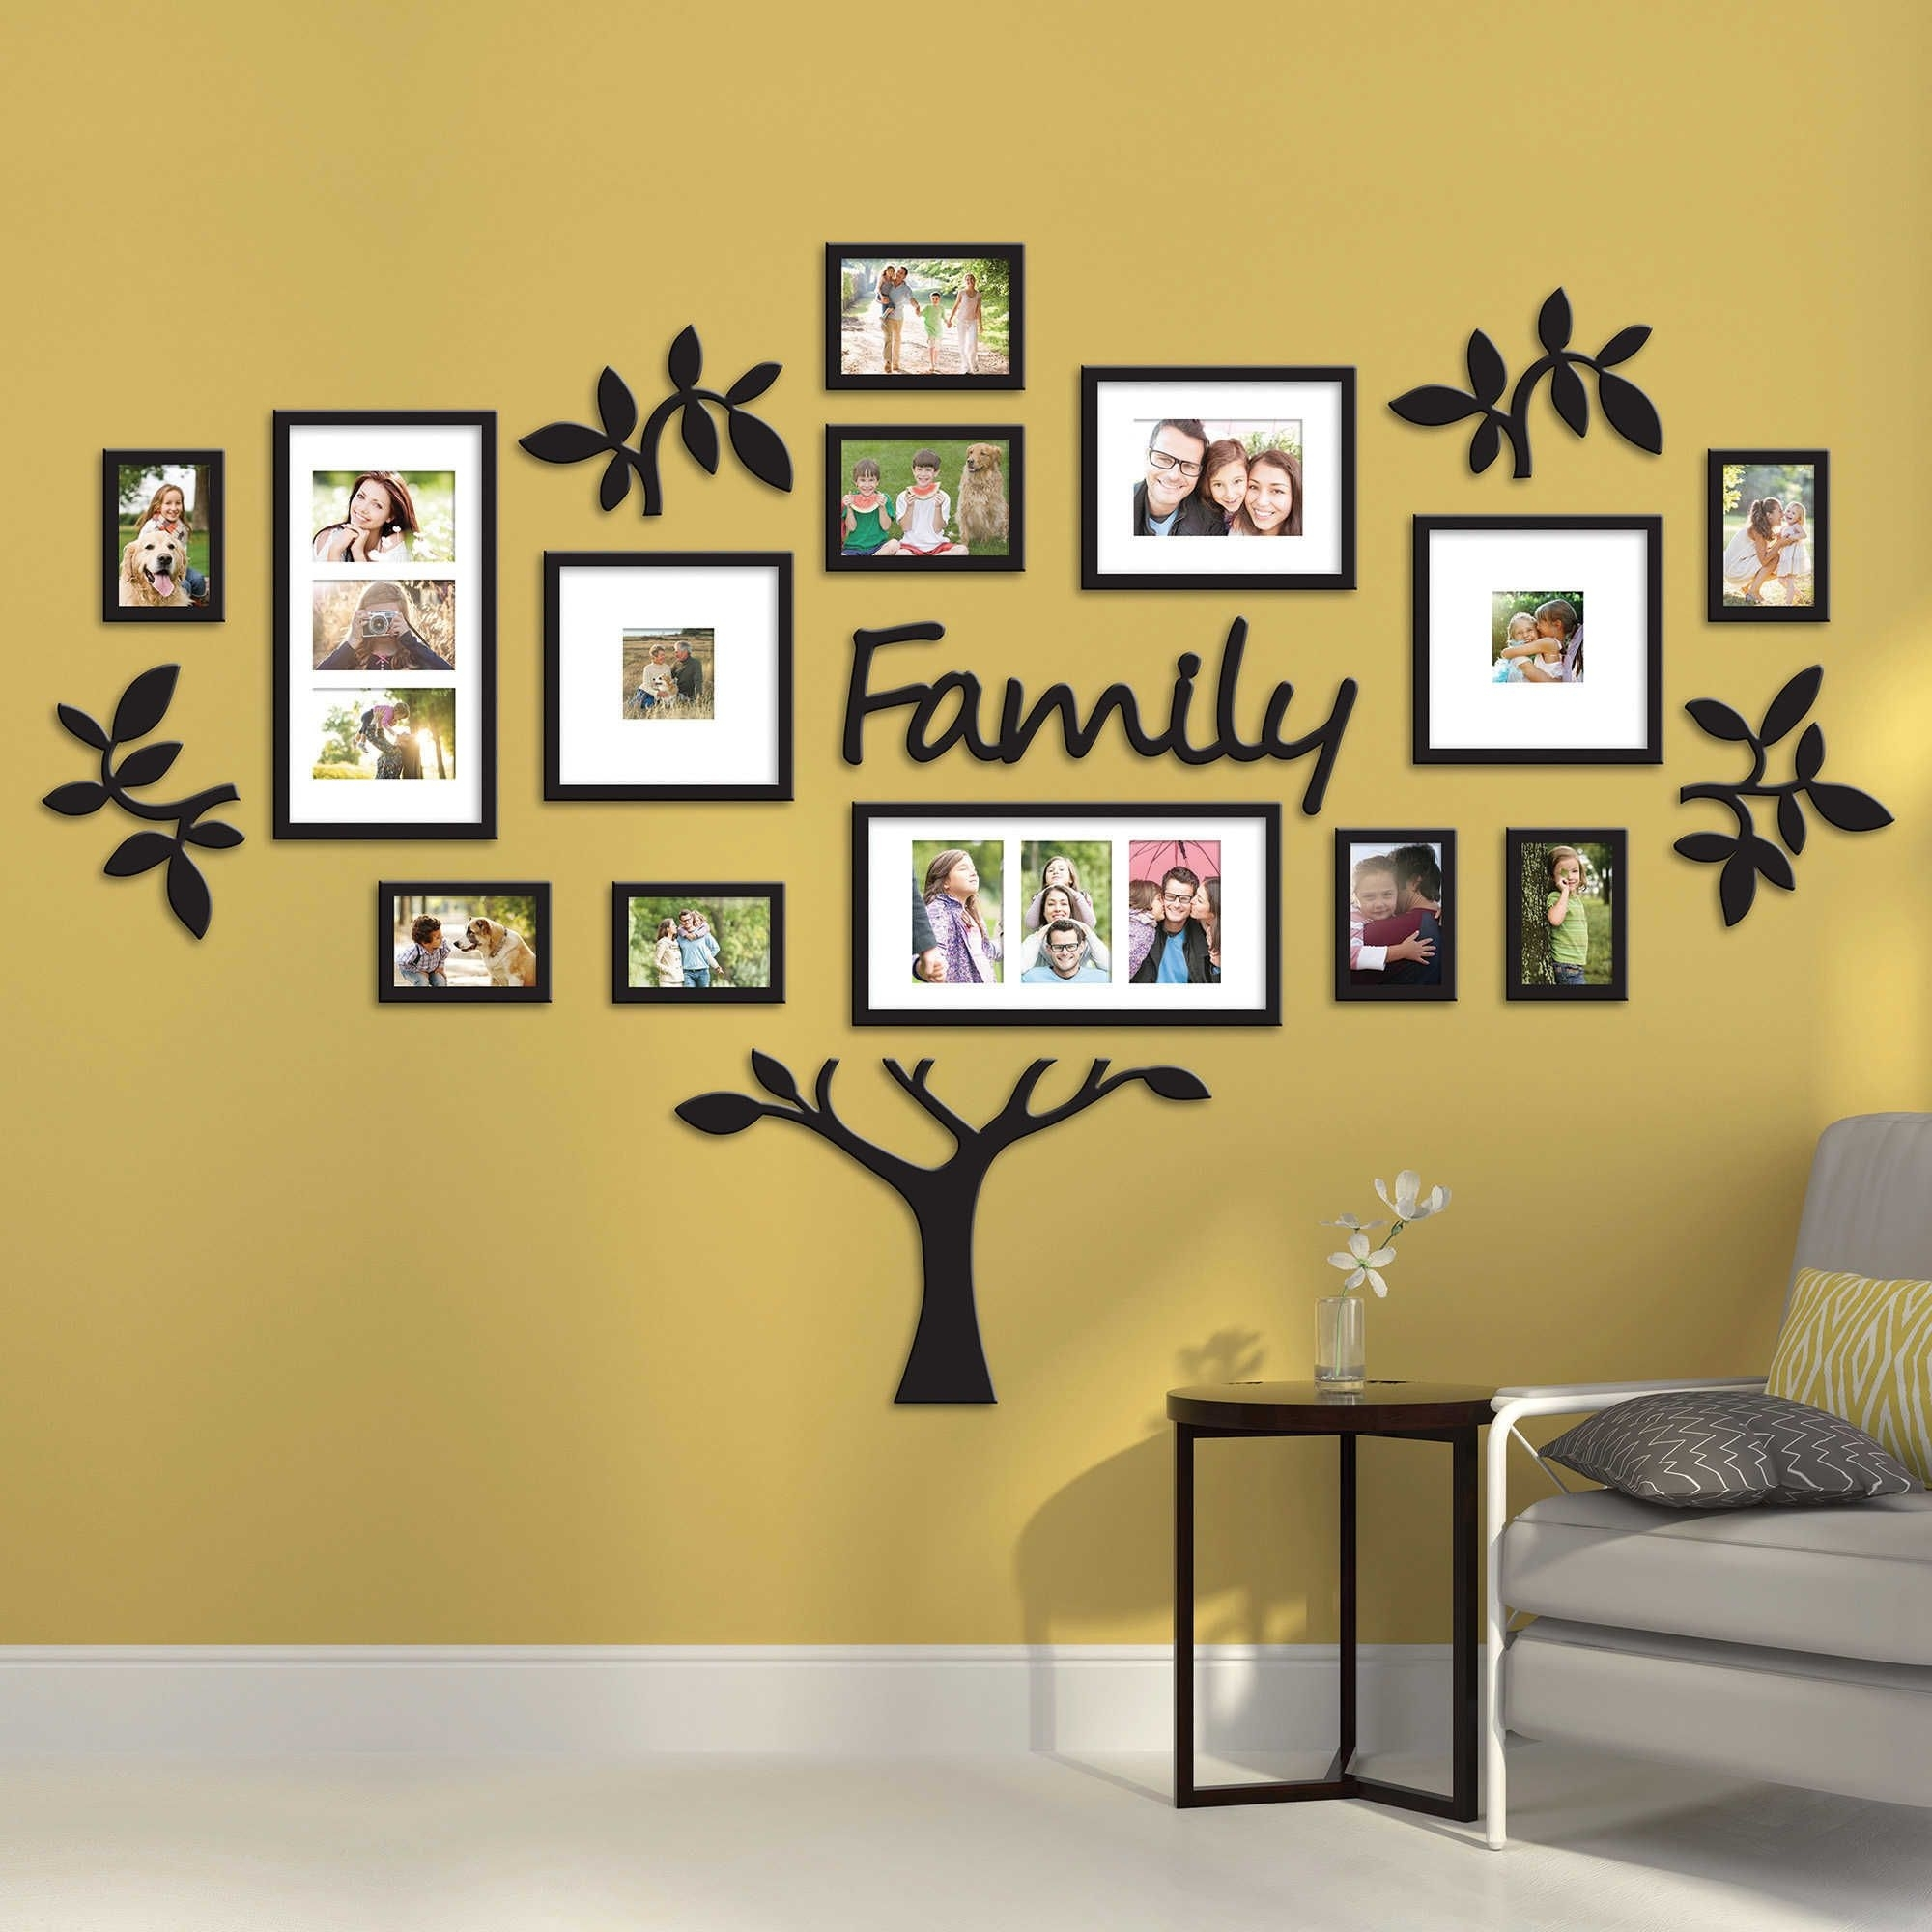 Wallverbs™ 19 Piece Family Tree Set | Home Decor Inspiration Throughout Latest Family Tree Wall Art (View 5 of 15)